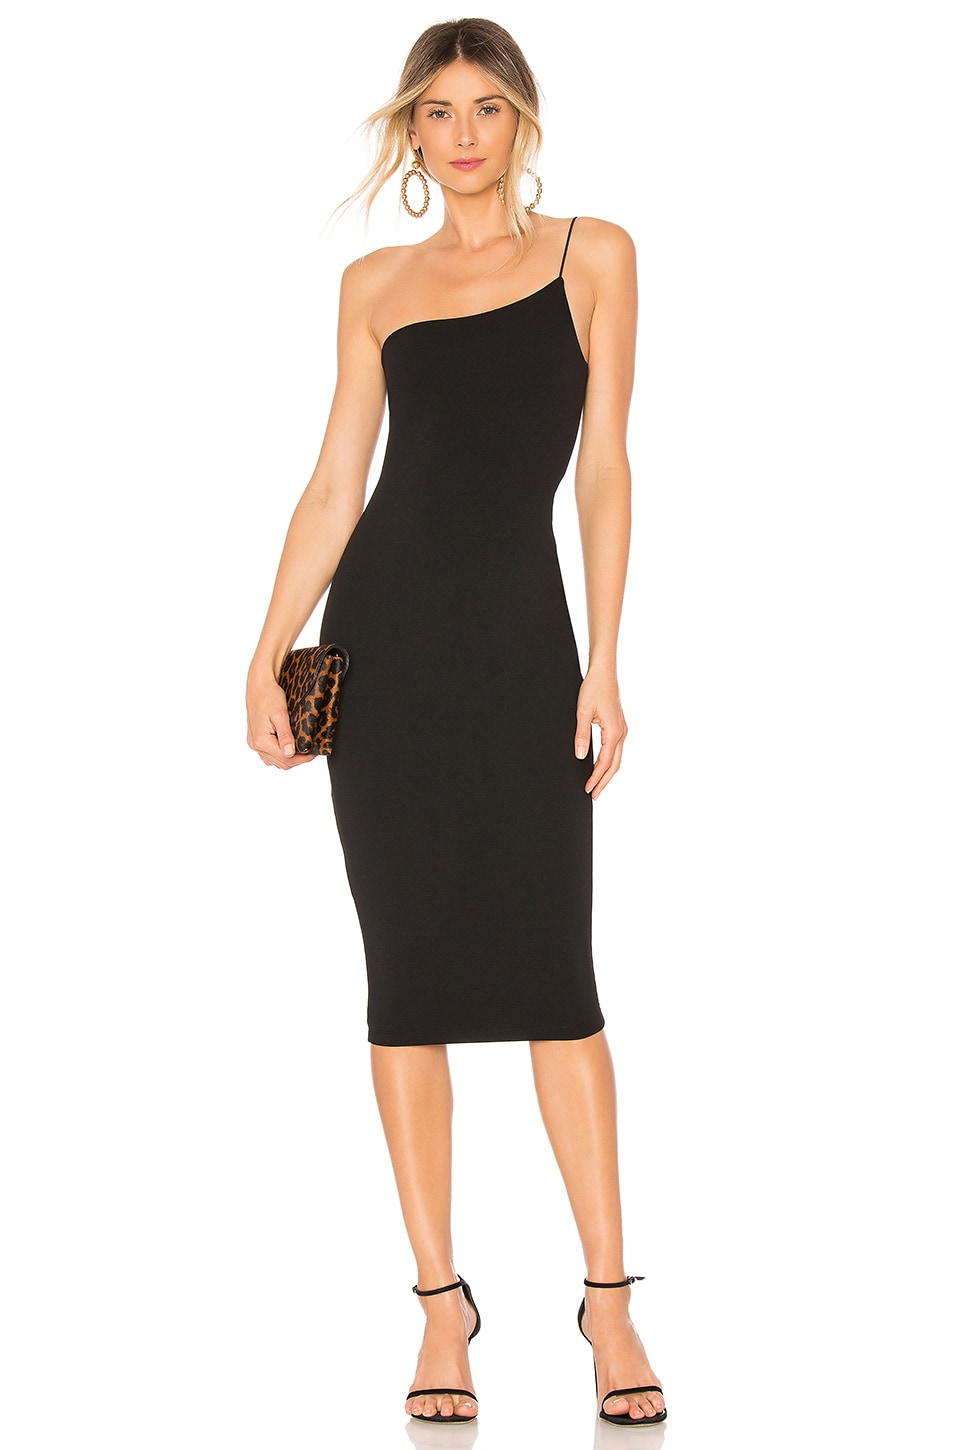 NOOKIE Penelope One-Shoulder Midi Dress in Black